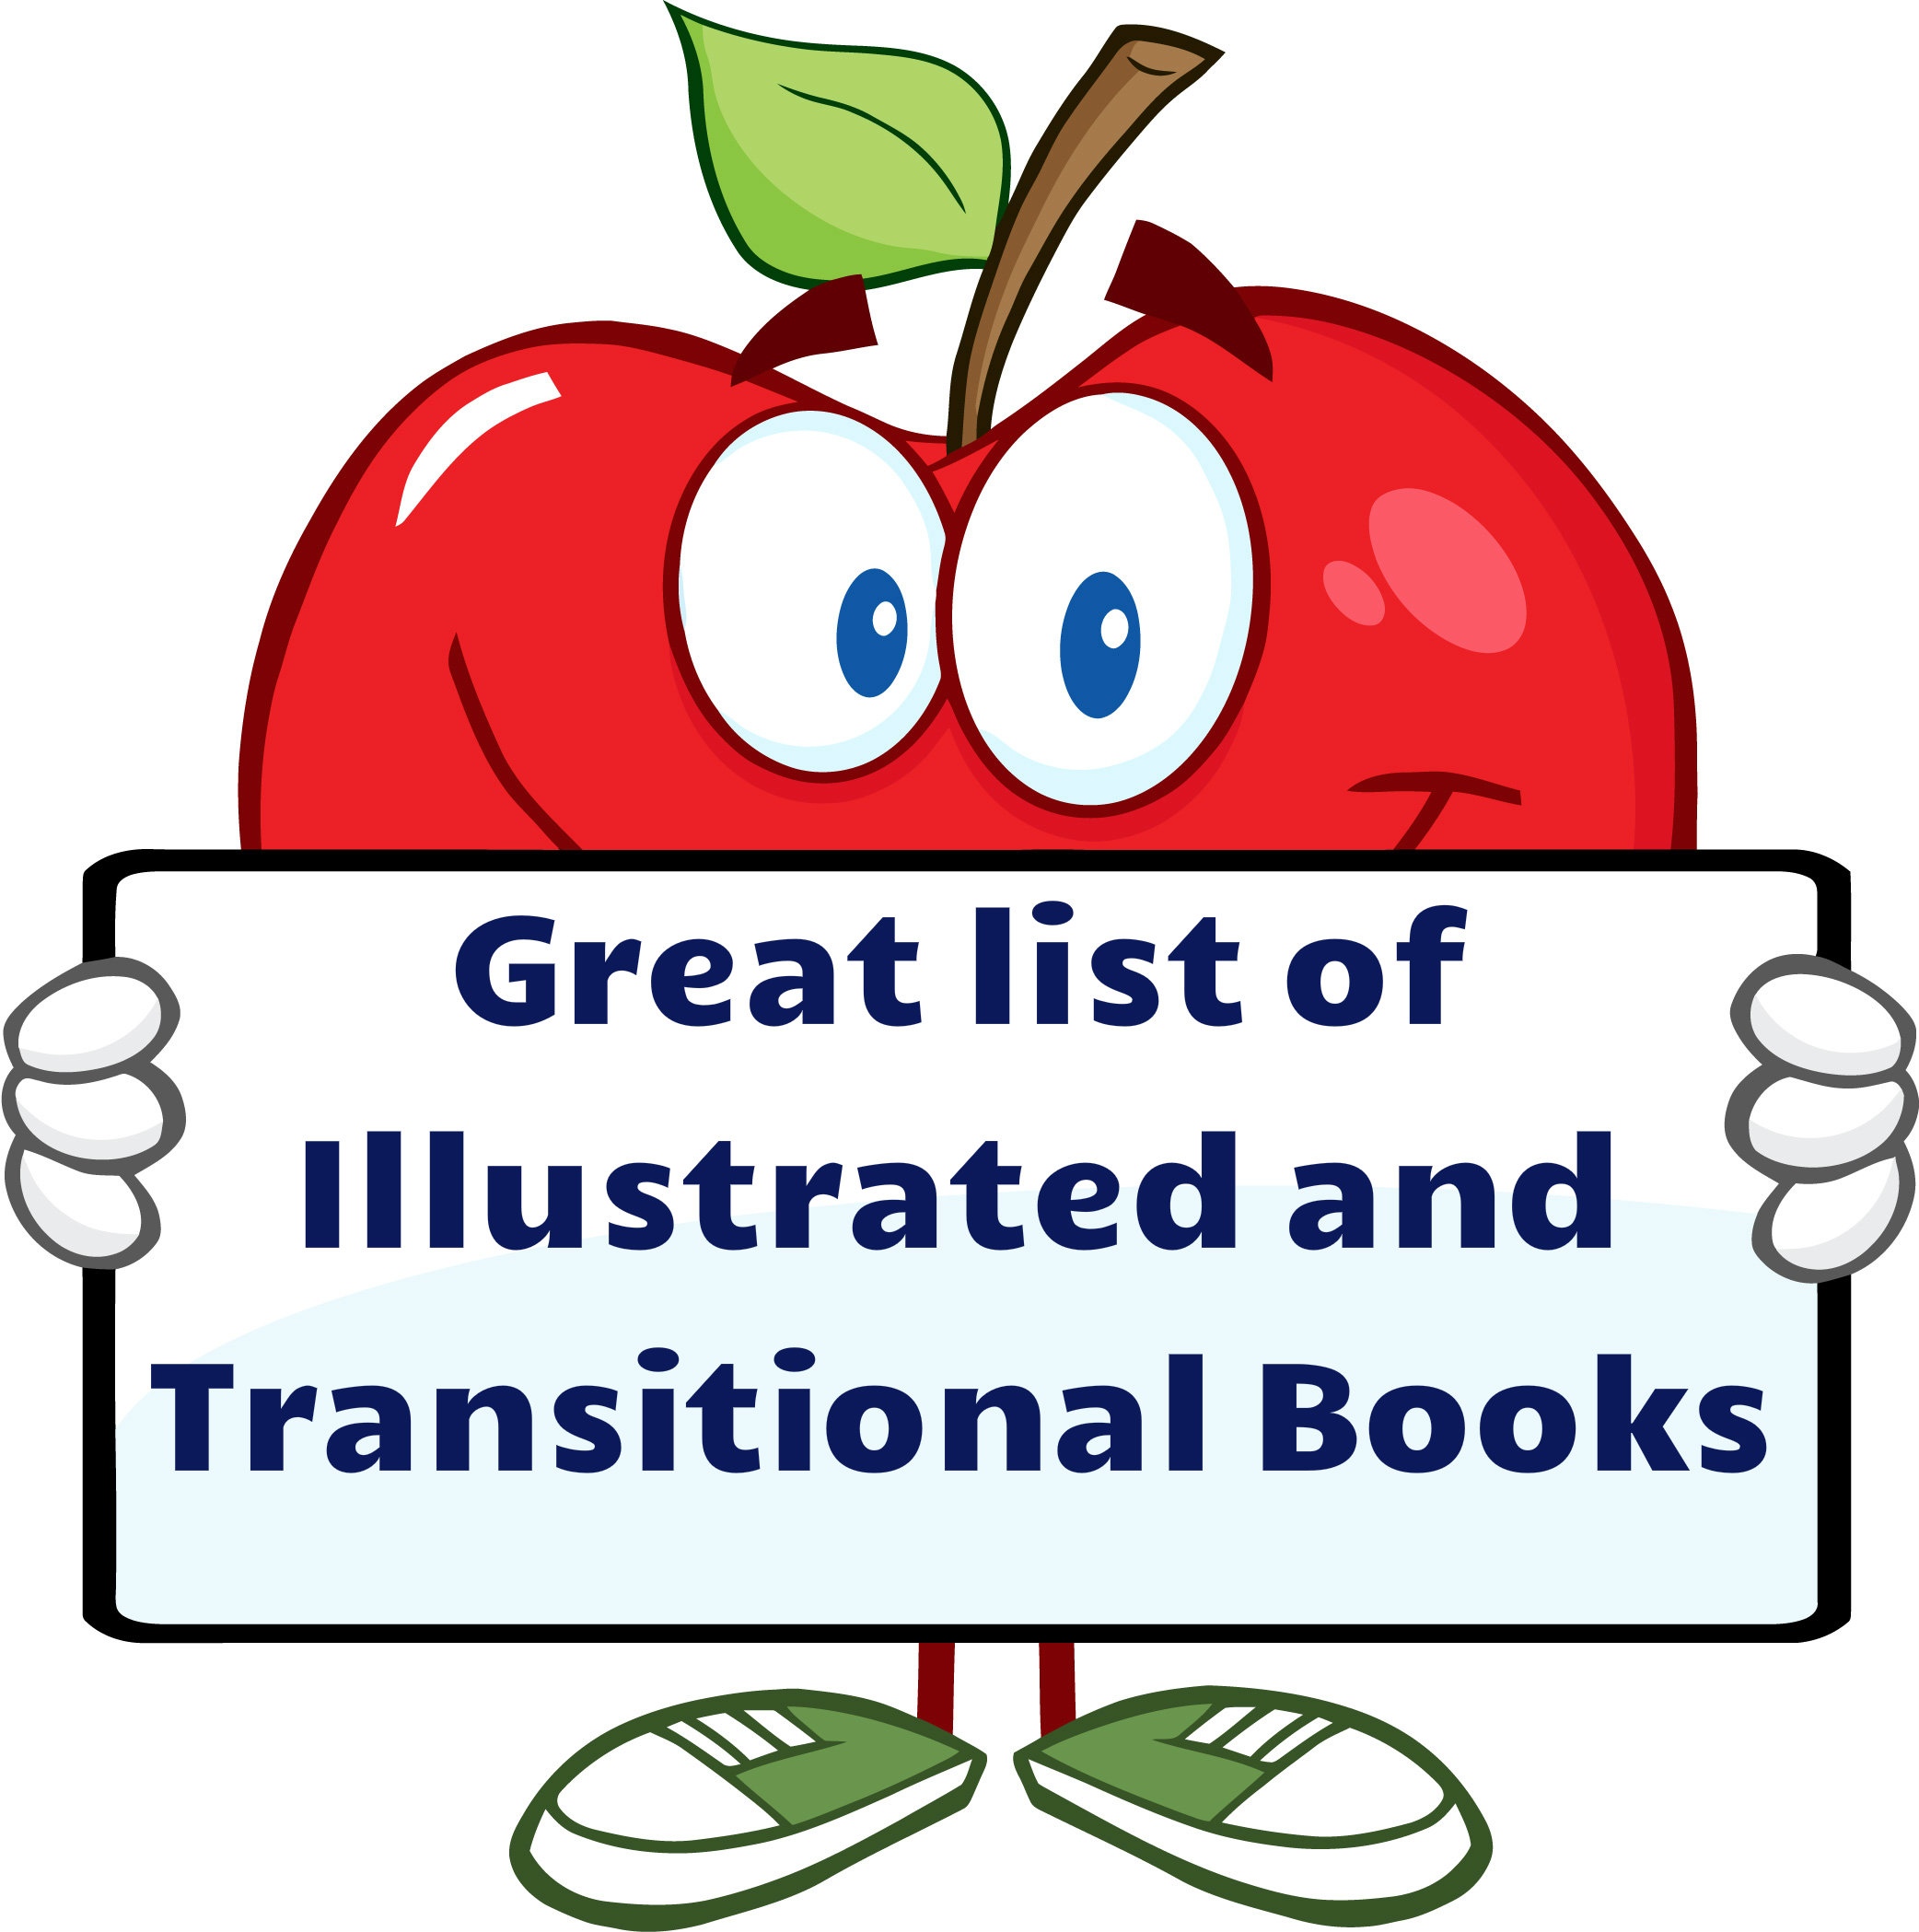 List of Illustrated and transitional books